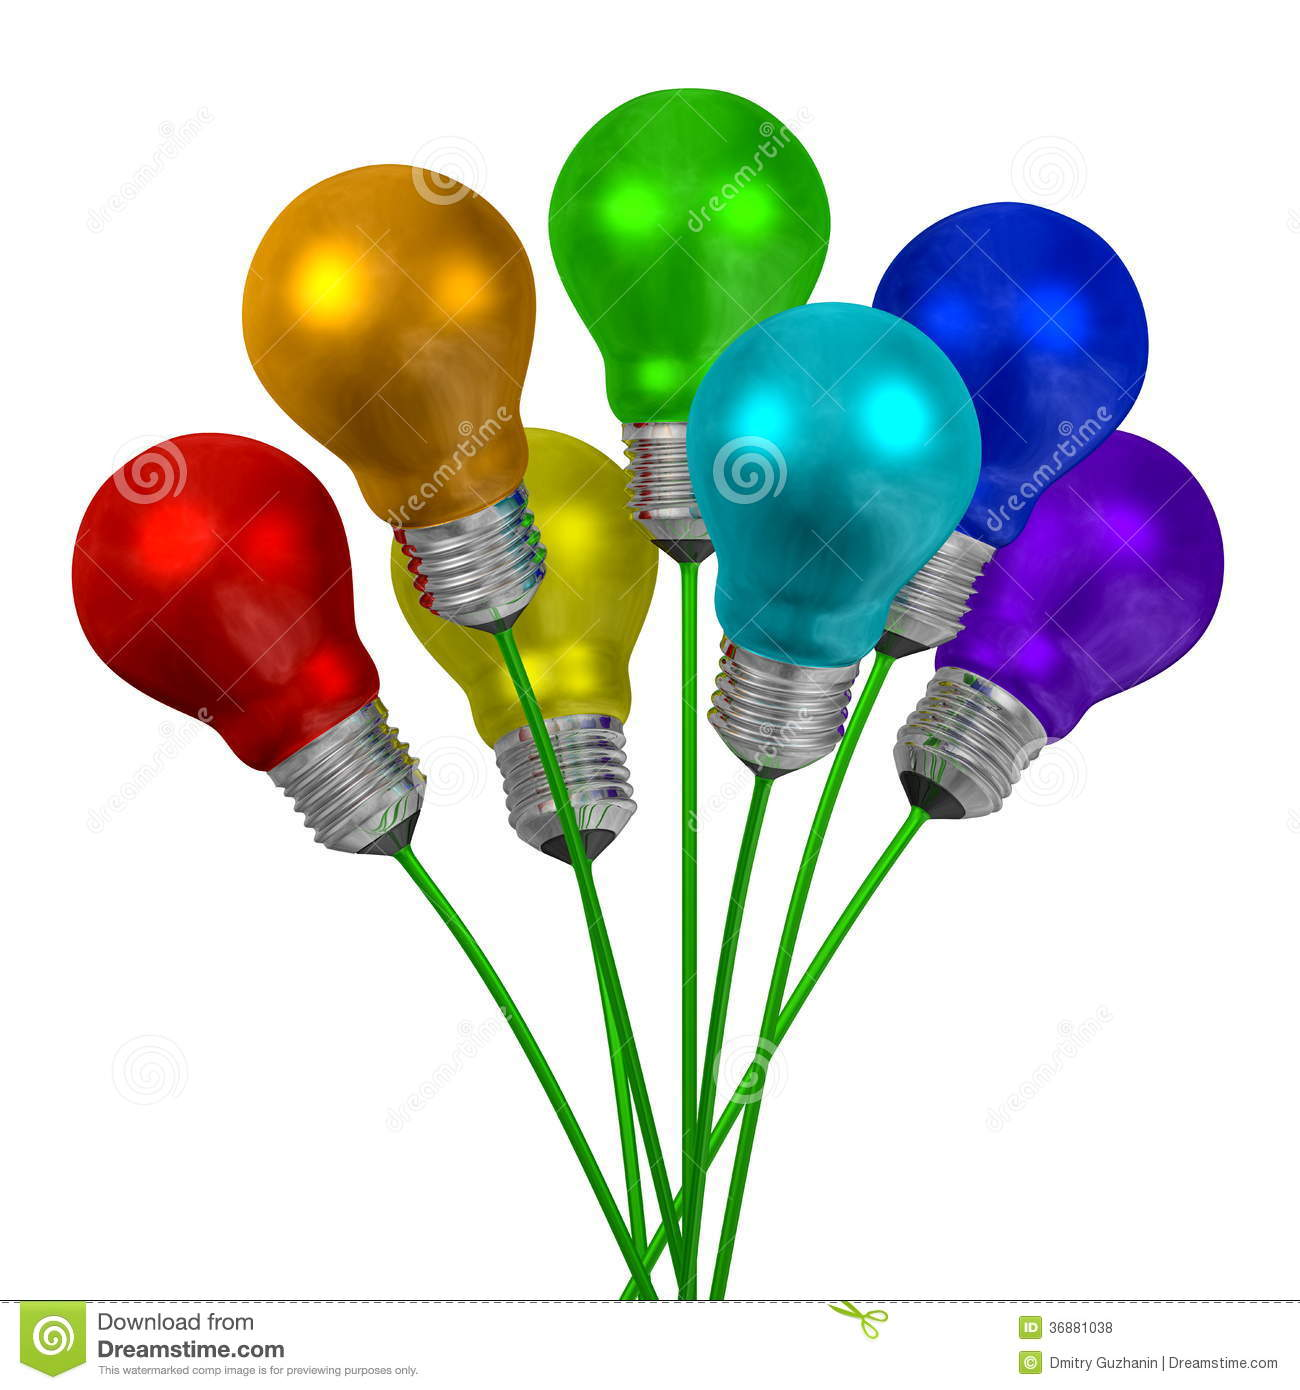 bouquet of light bulbs of different colors on green wires royalty free stock photos image. Black Bedroom Furniture Sets. Home Design Ideas